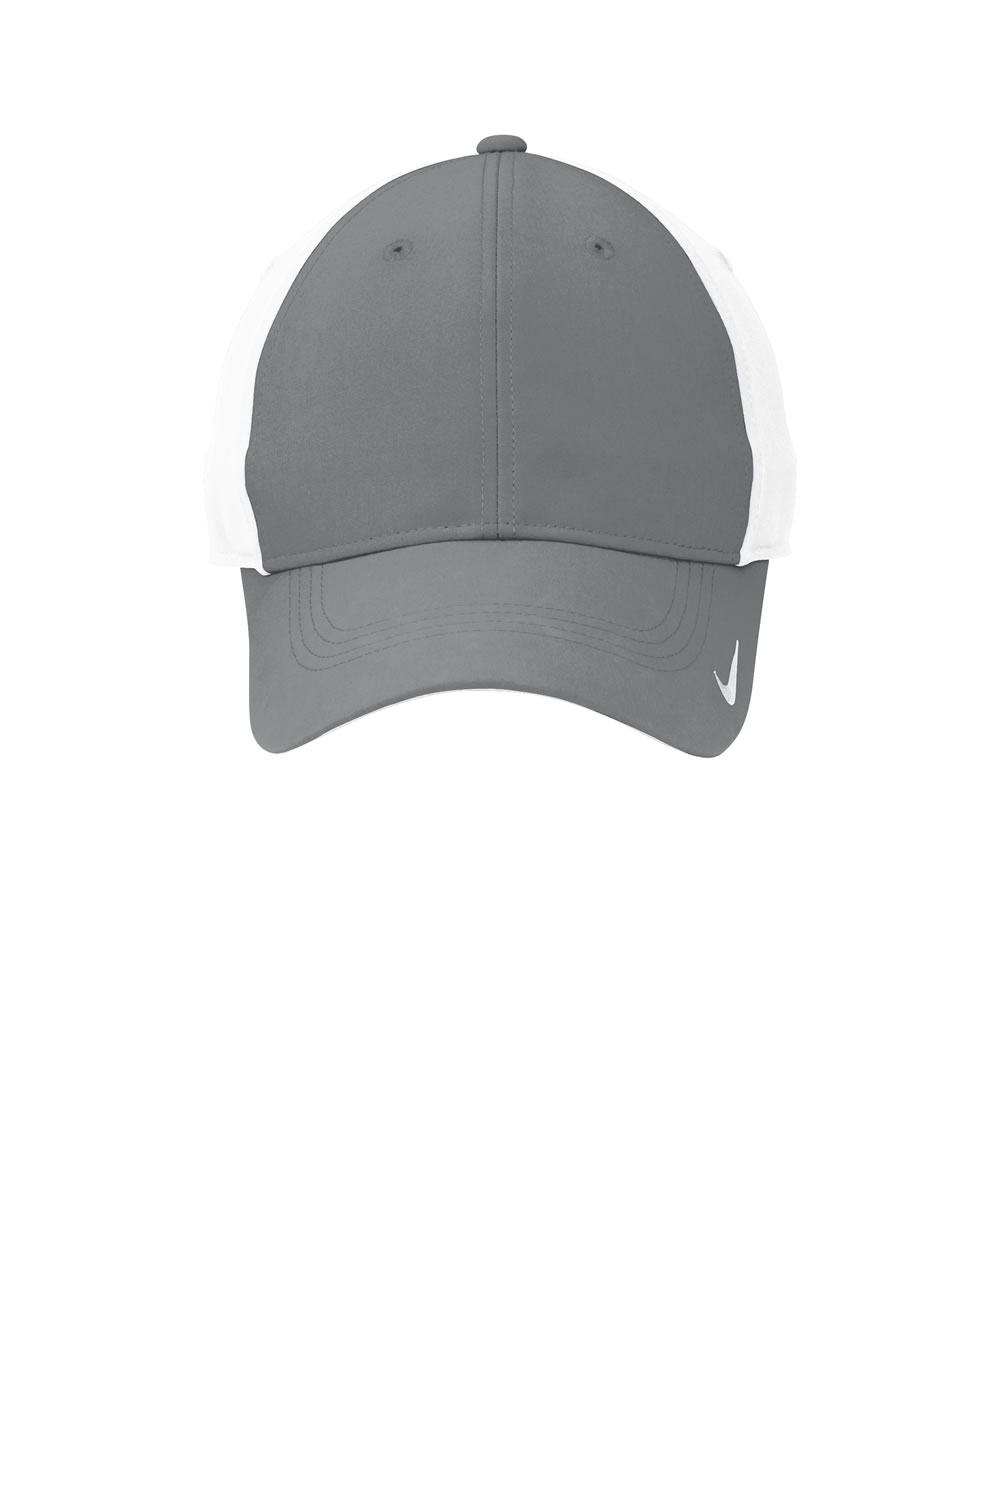 6b7df832ef631  779797 Swoosh Legacy 91 Cap custom embroidered or printed with your logo.